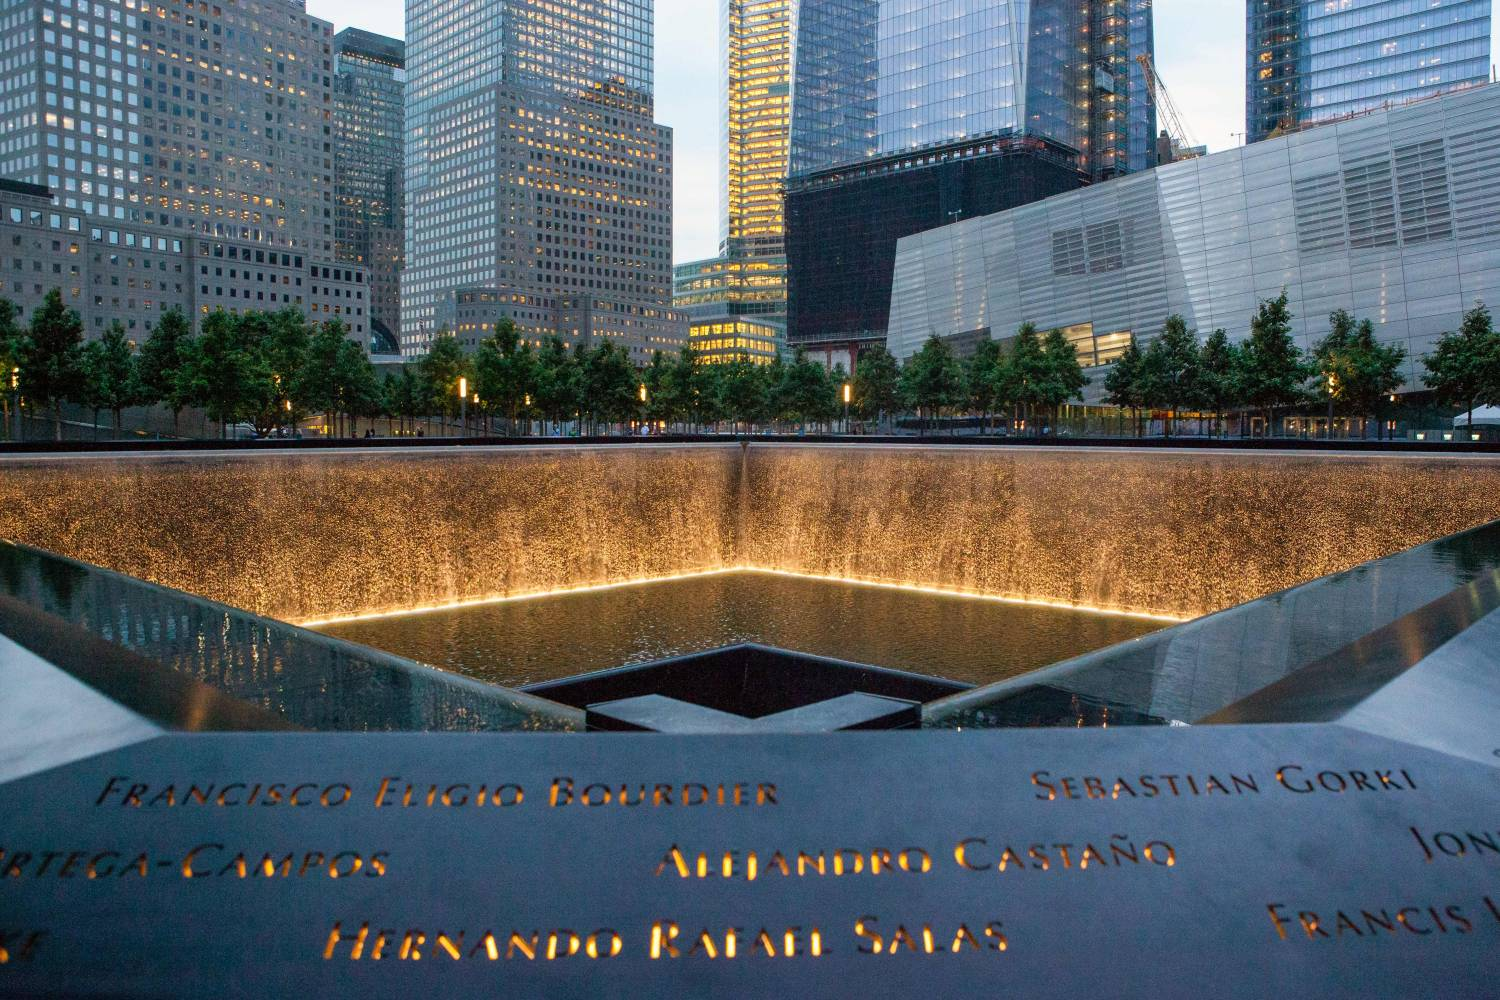 911 Memorial and Museum - 911 Facts